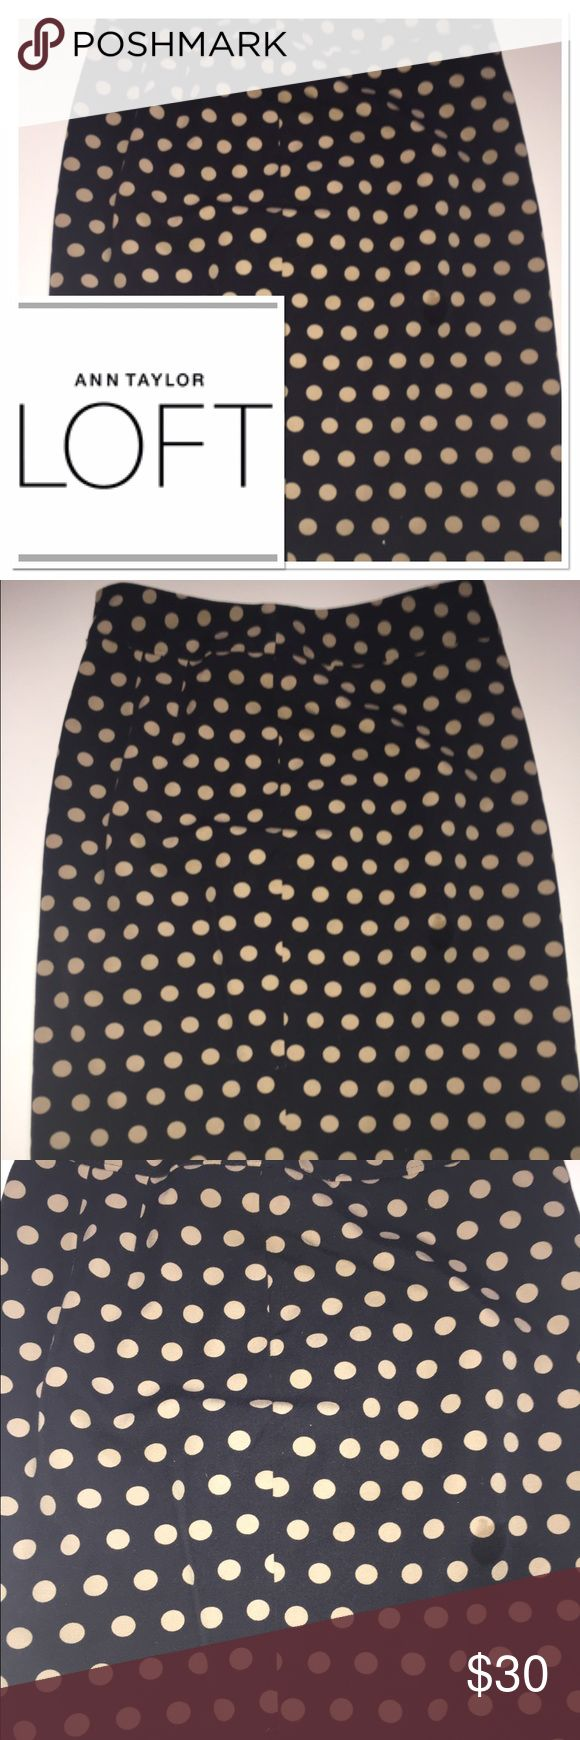 Anne Taylor Loft black and cream polka dot skirt Very cute polka dot skirt from the Loft in excellent condition comes to mid thigh LOFT Skirts Midi